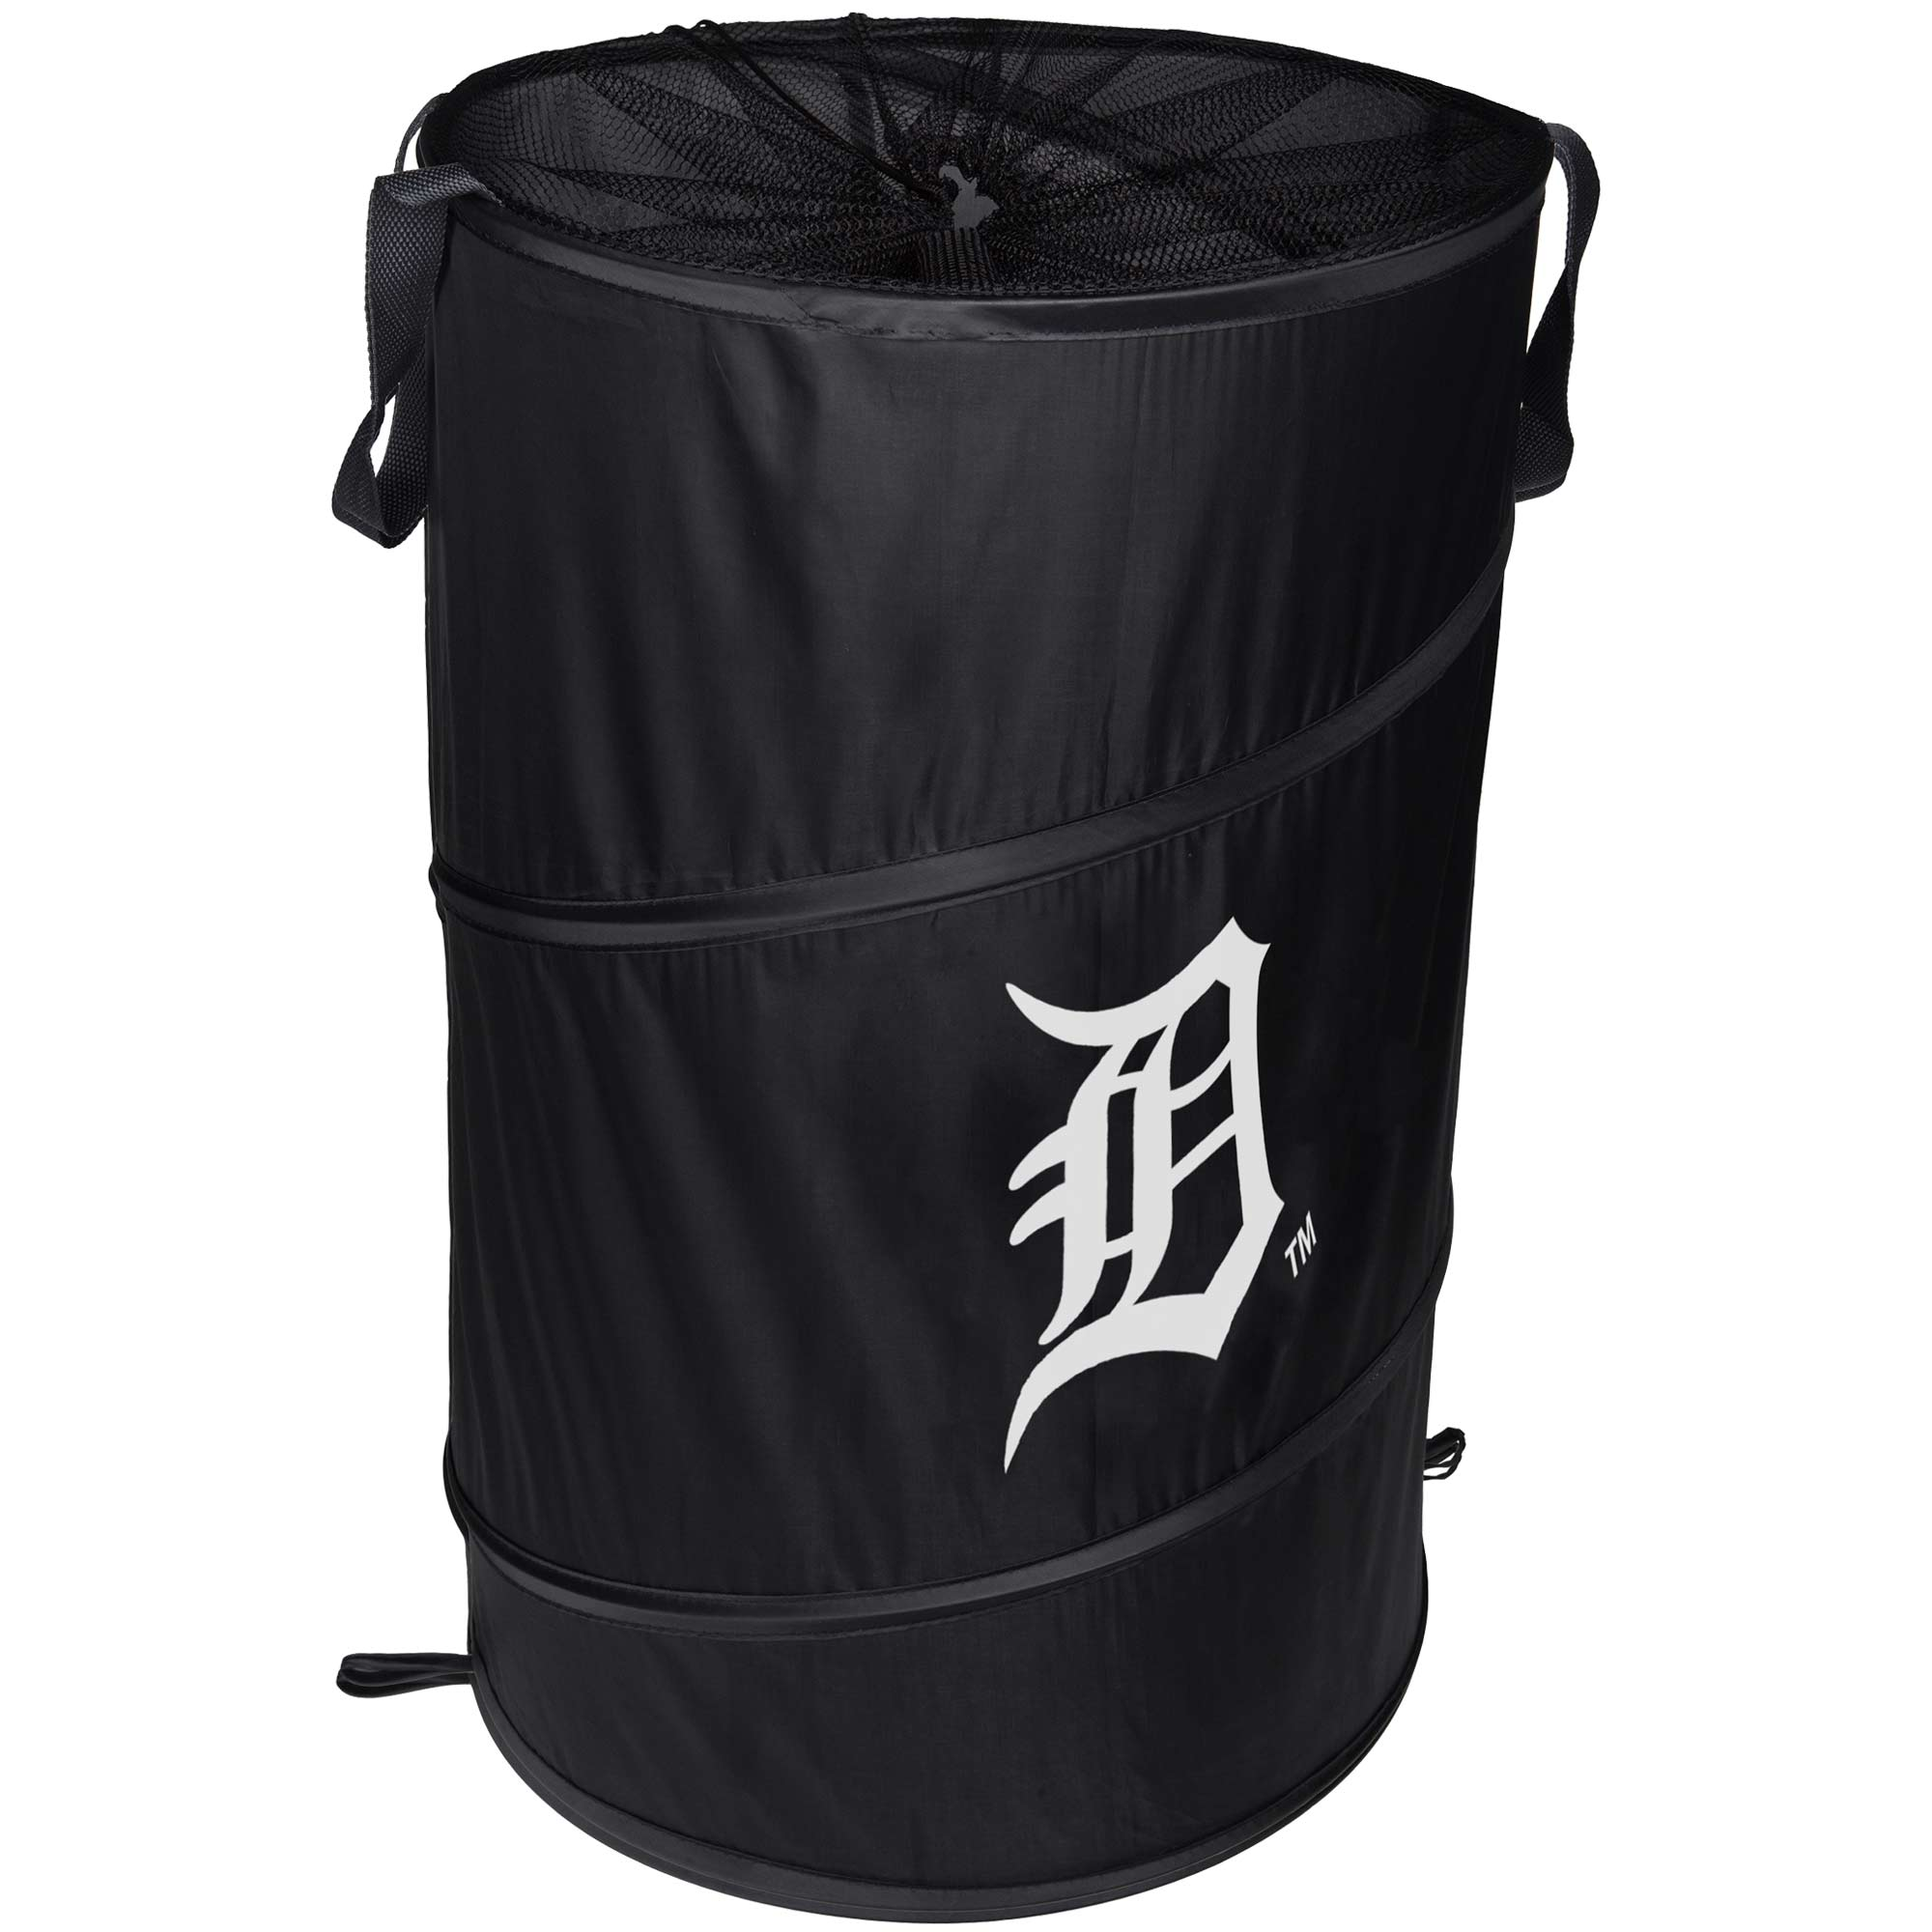 Detroit Tigers Cylinder Pop Up Hamper - No Size